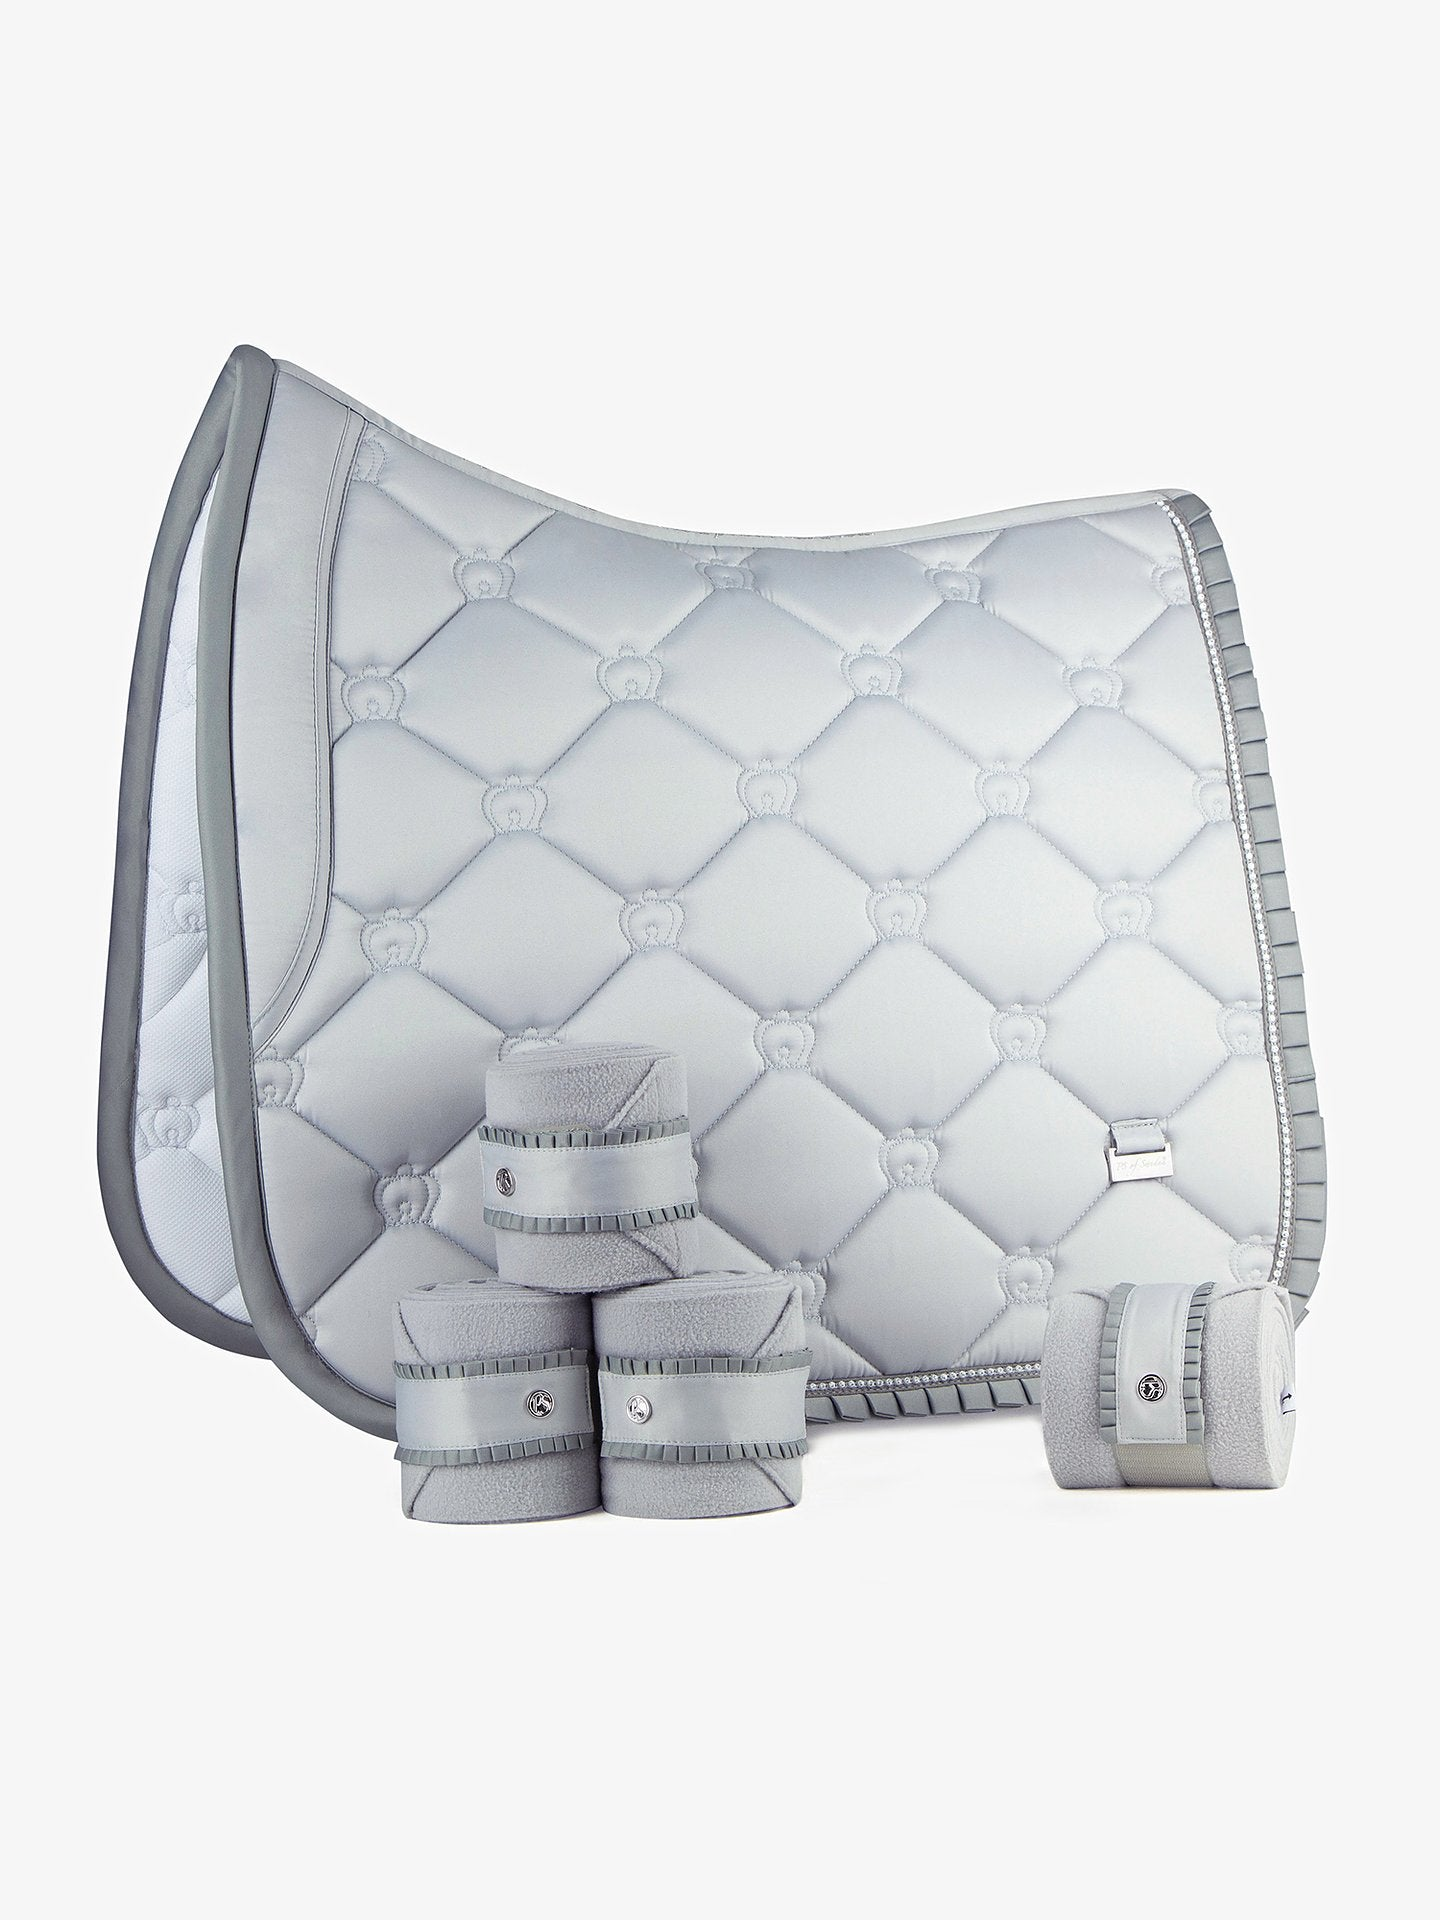 PS Of Sweden Silver Ruffle Set - Full Dressage